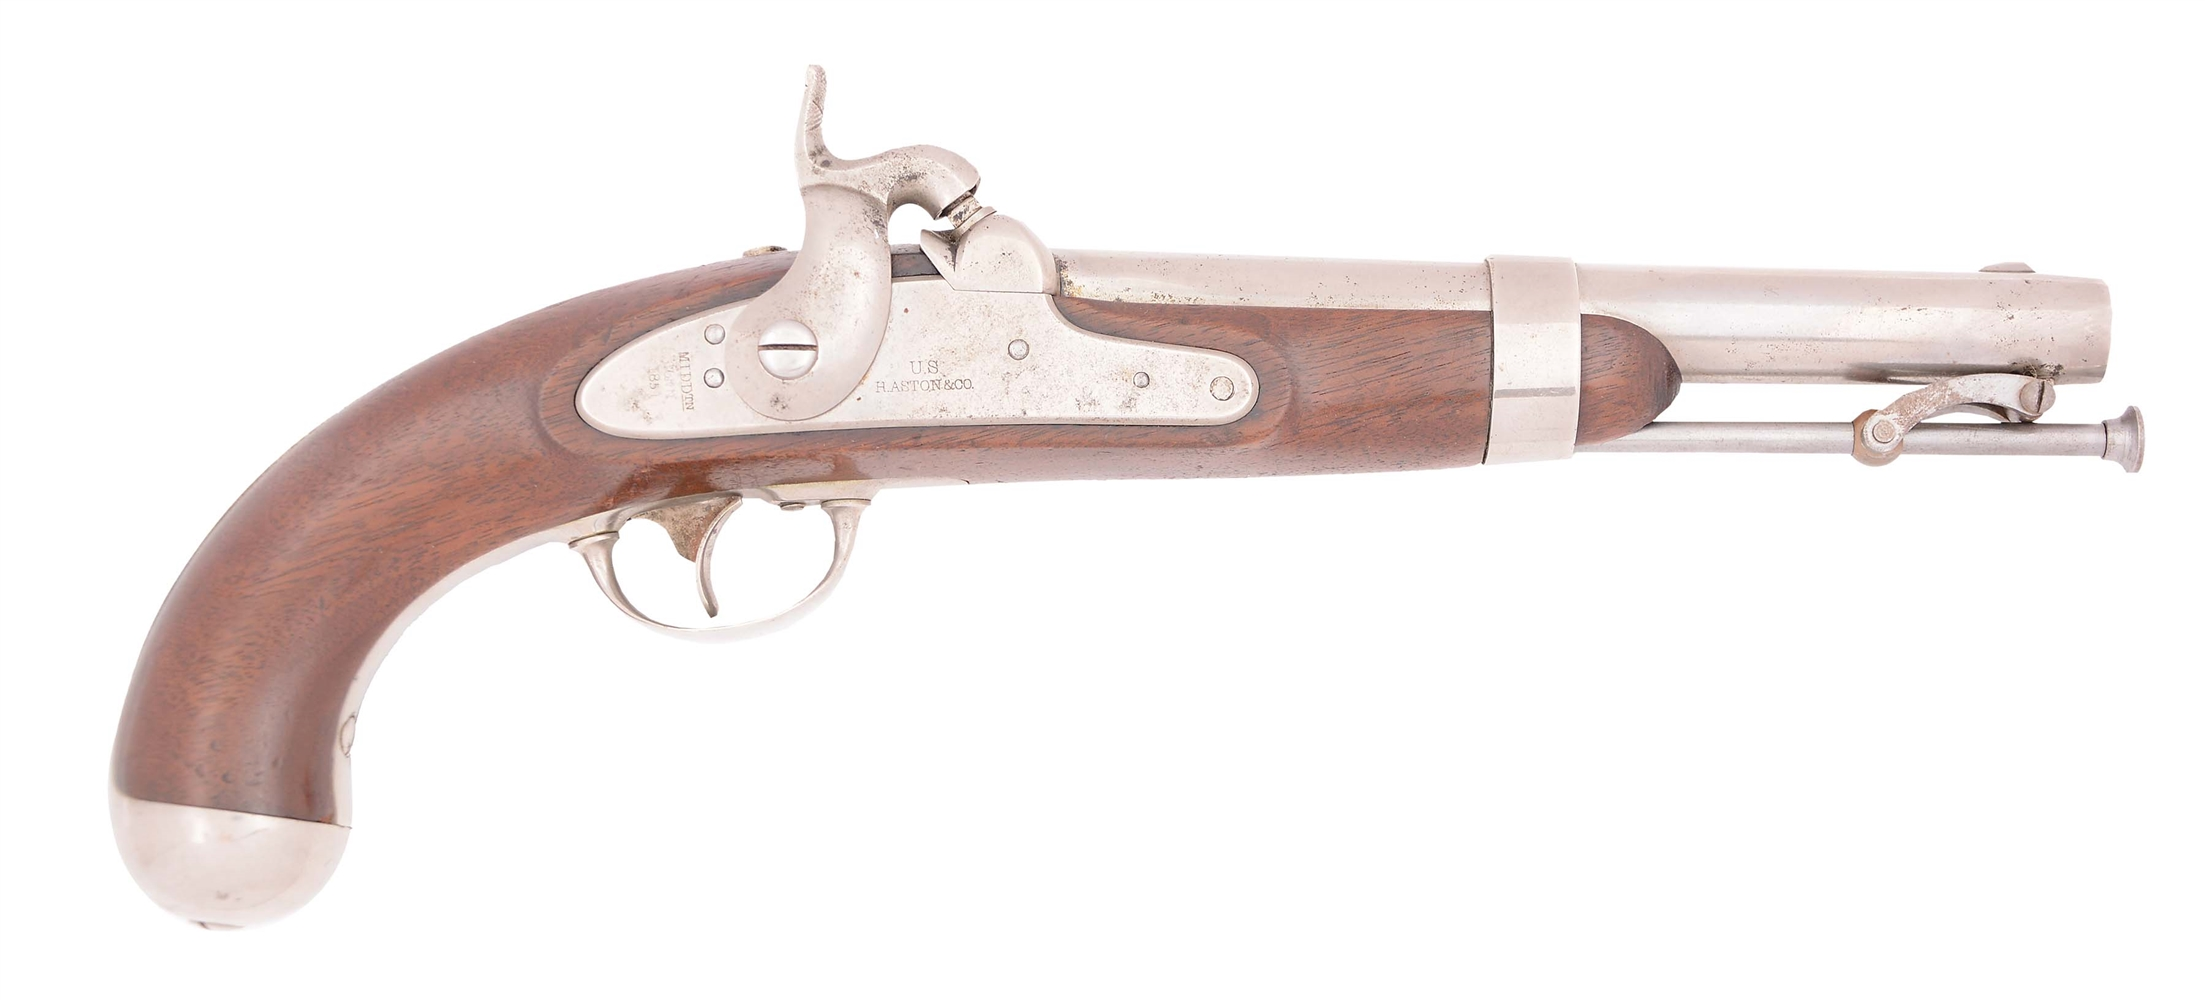 (A) A US MODEL 1842 PERCUSSION SINGLE SHOT MARTIAL PISTOL BY H. ASTON, DATED 1851.